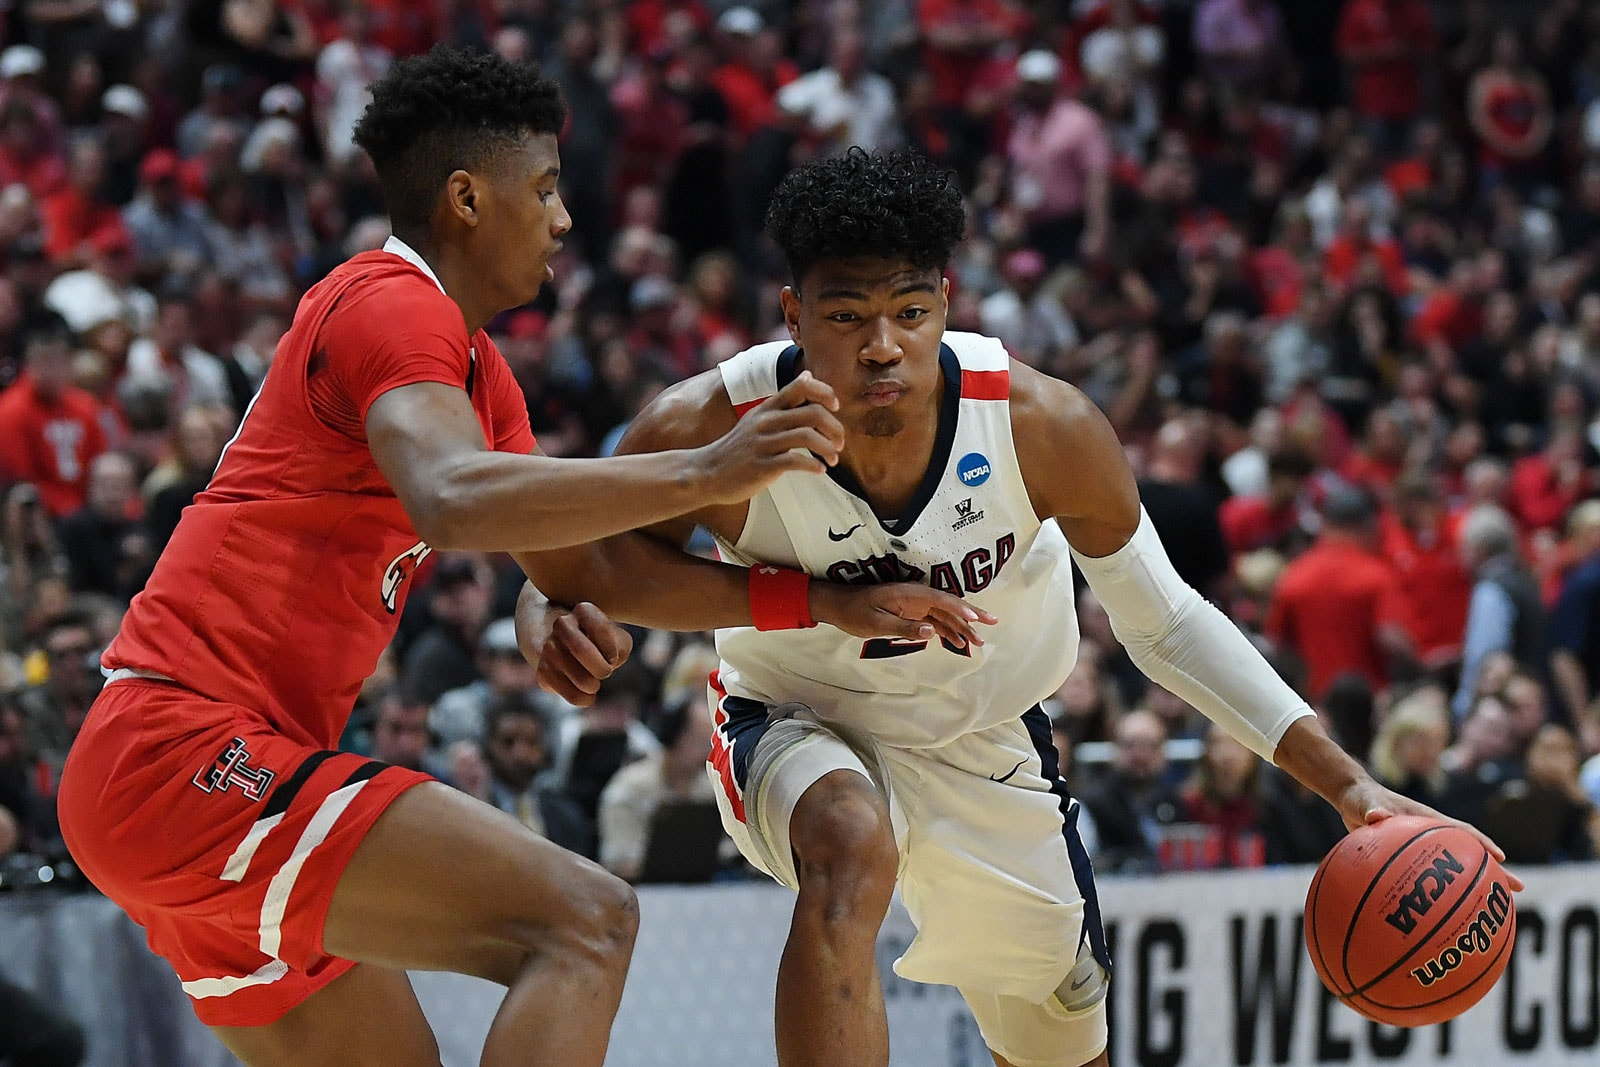 Rui Hachimura #21 of the Gonzaga Bulldogs drives against Jarrett Culver #23 of the Texas Tech Red Raiders during the first half of the 2019 NCAA Men's Basketball Tournament West Regional at Honda Center on March 30, 2019 in Anaheim, California.